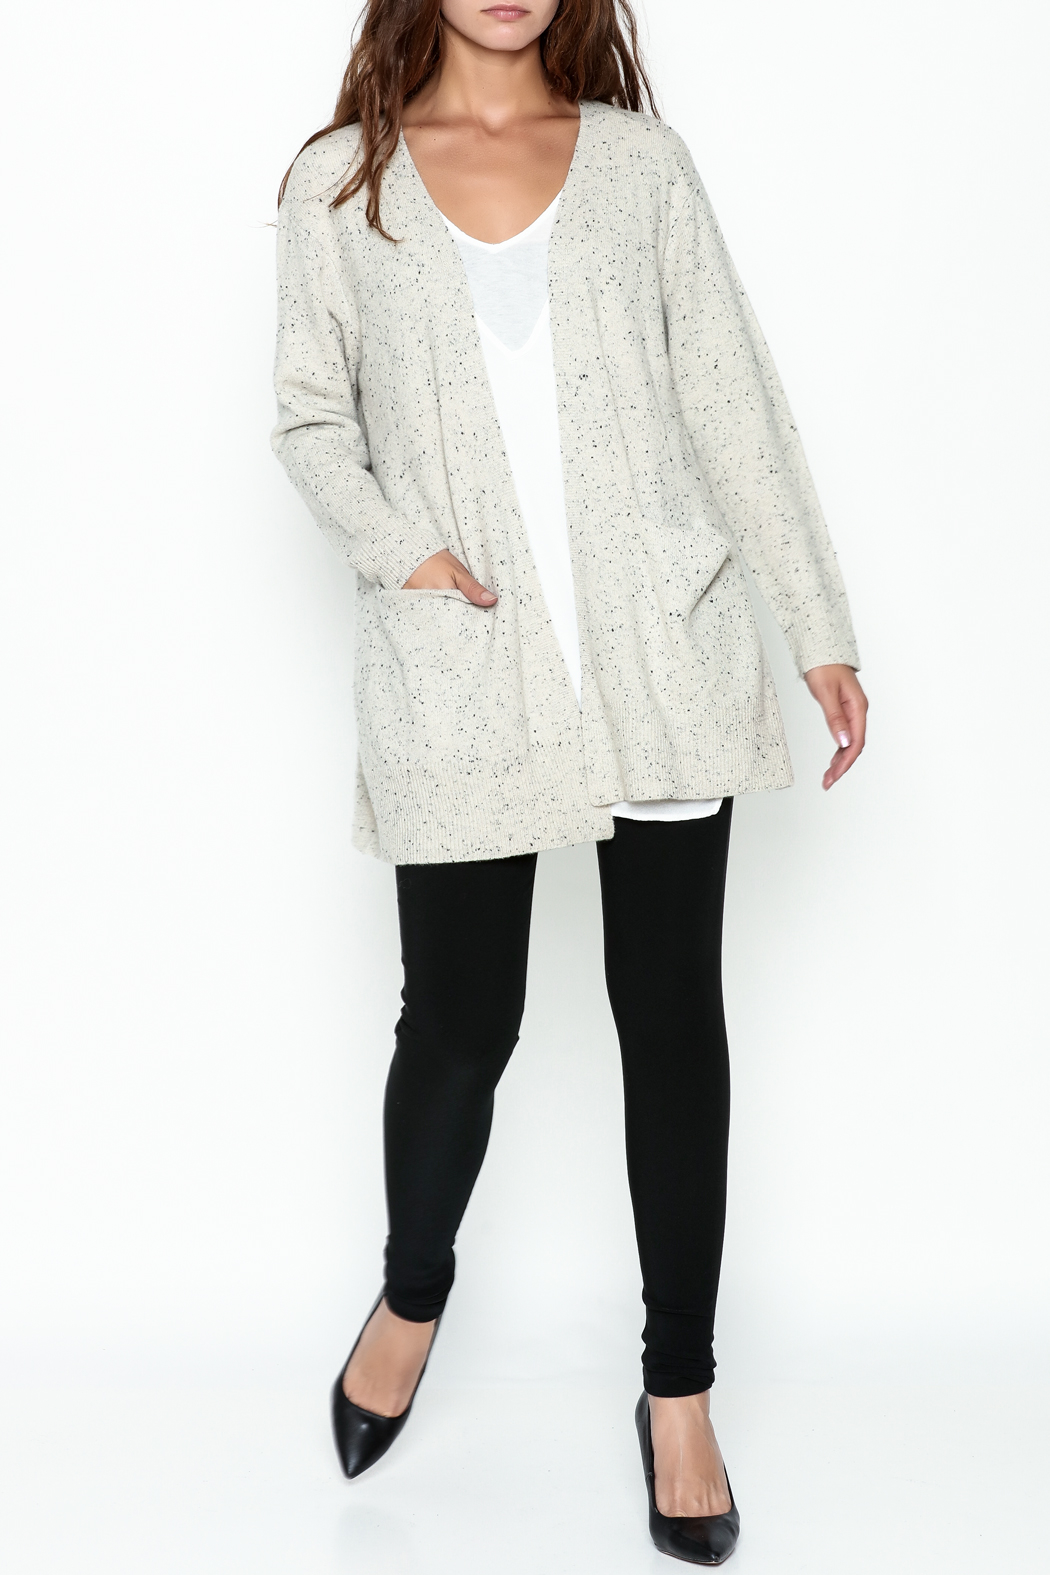 subtle luxury Lou Lounge Cardigan - Side Cropped Image